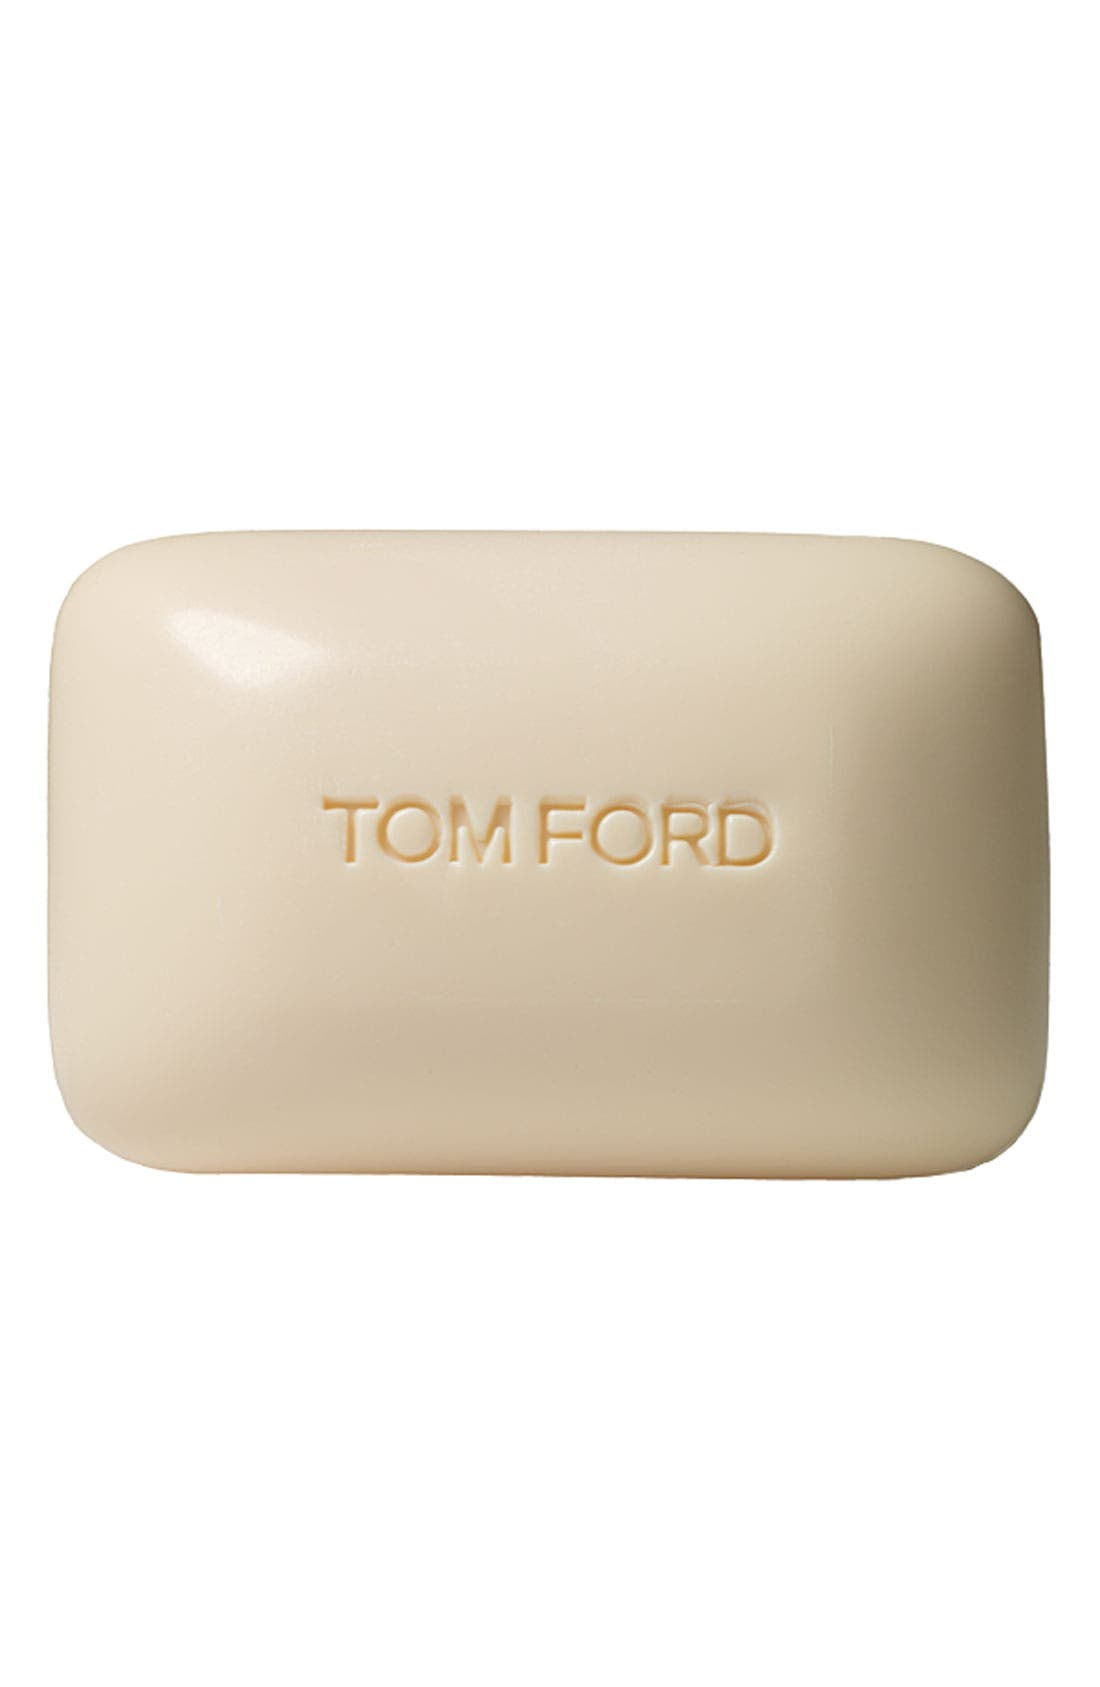 Tom Ford Private Blend 'Neroli Portofino' Bath Soap